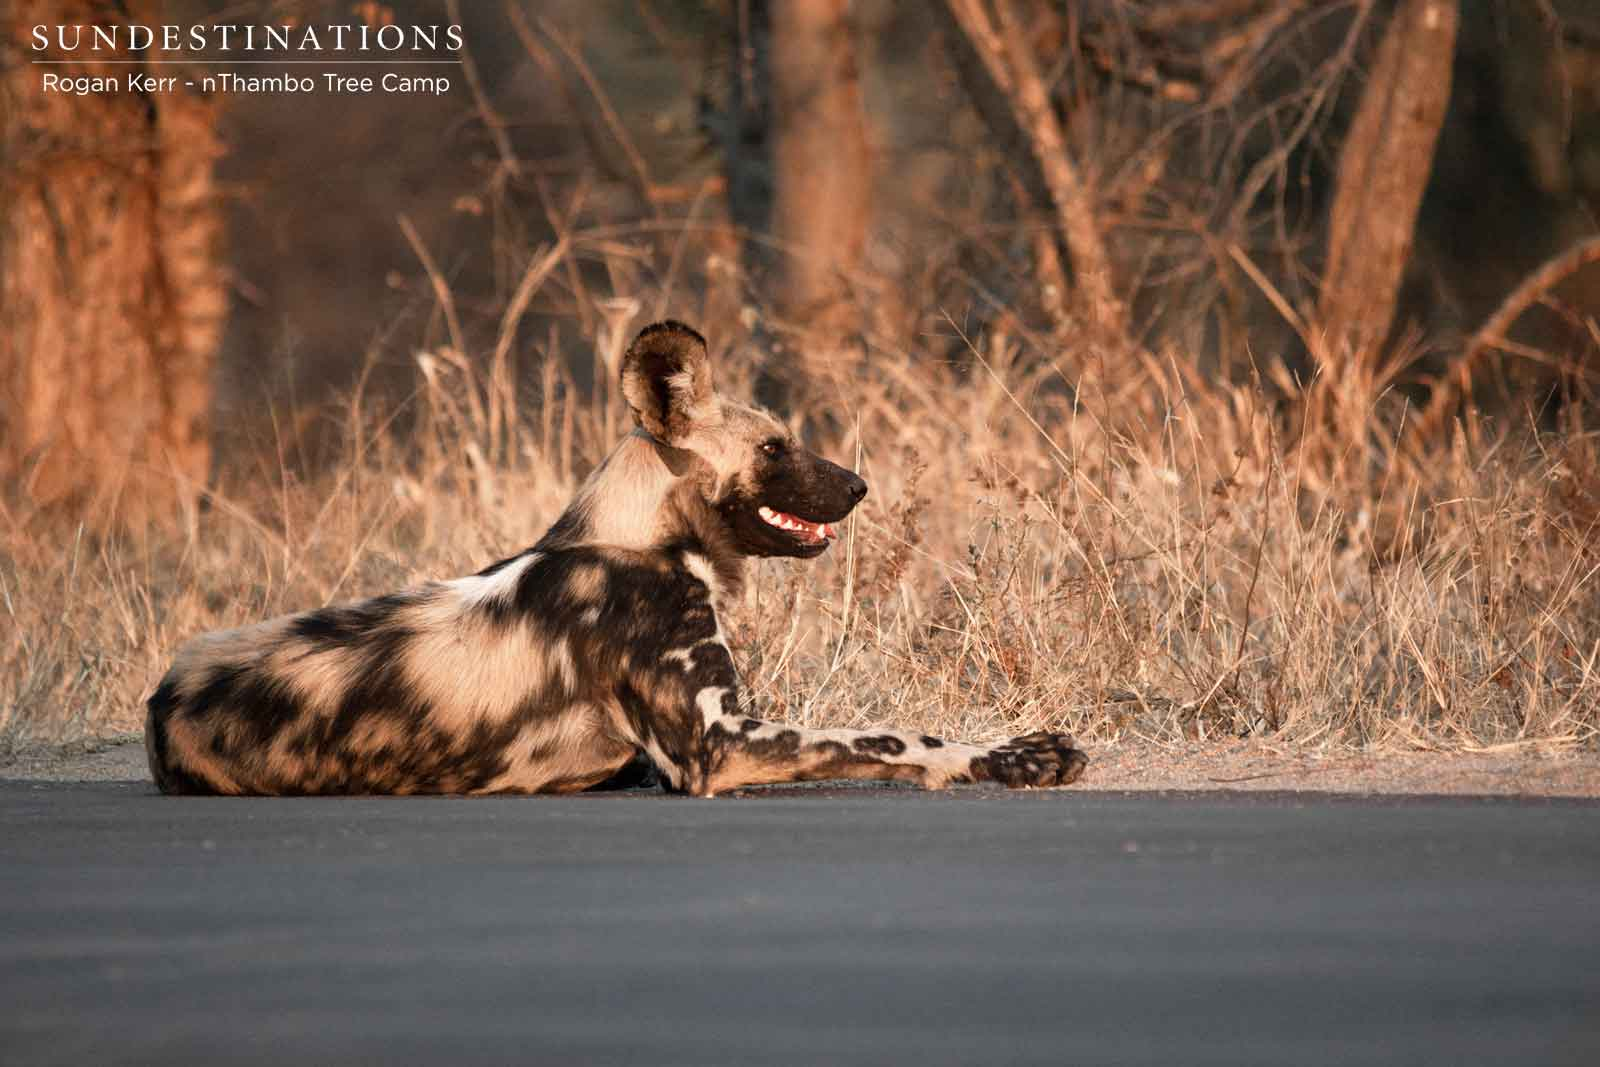 Wild Dog at nThambo Tree Camp